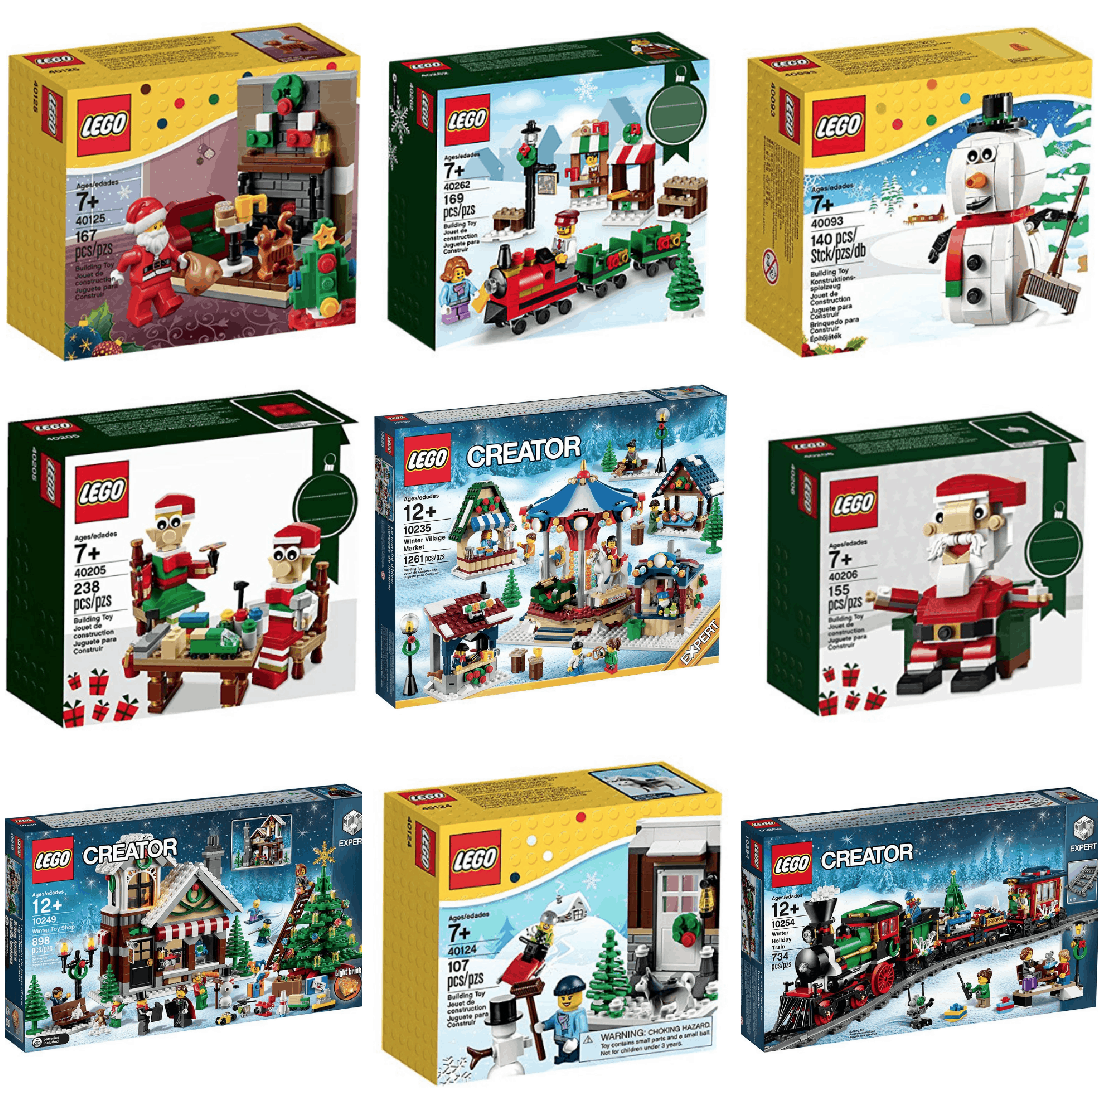 Lego Friends Christmas Sets.Target Free Lego Creator Christmas Set With 35 Lego Purchase